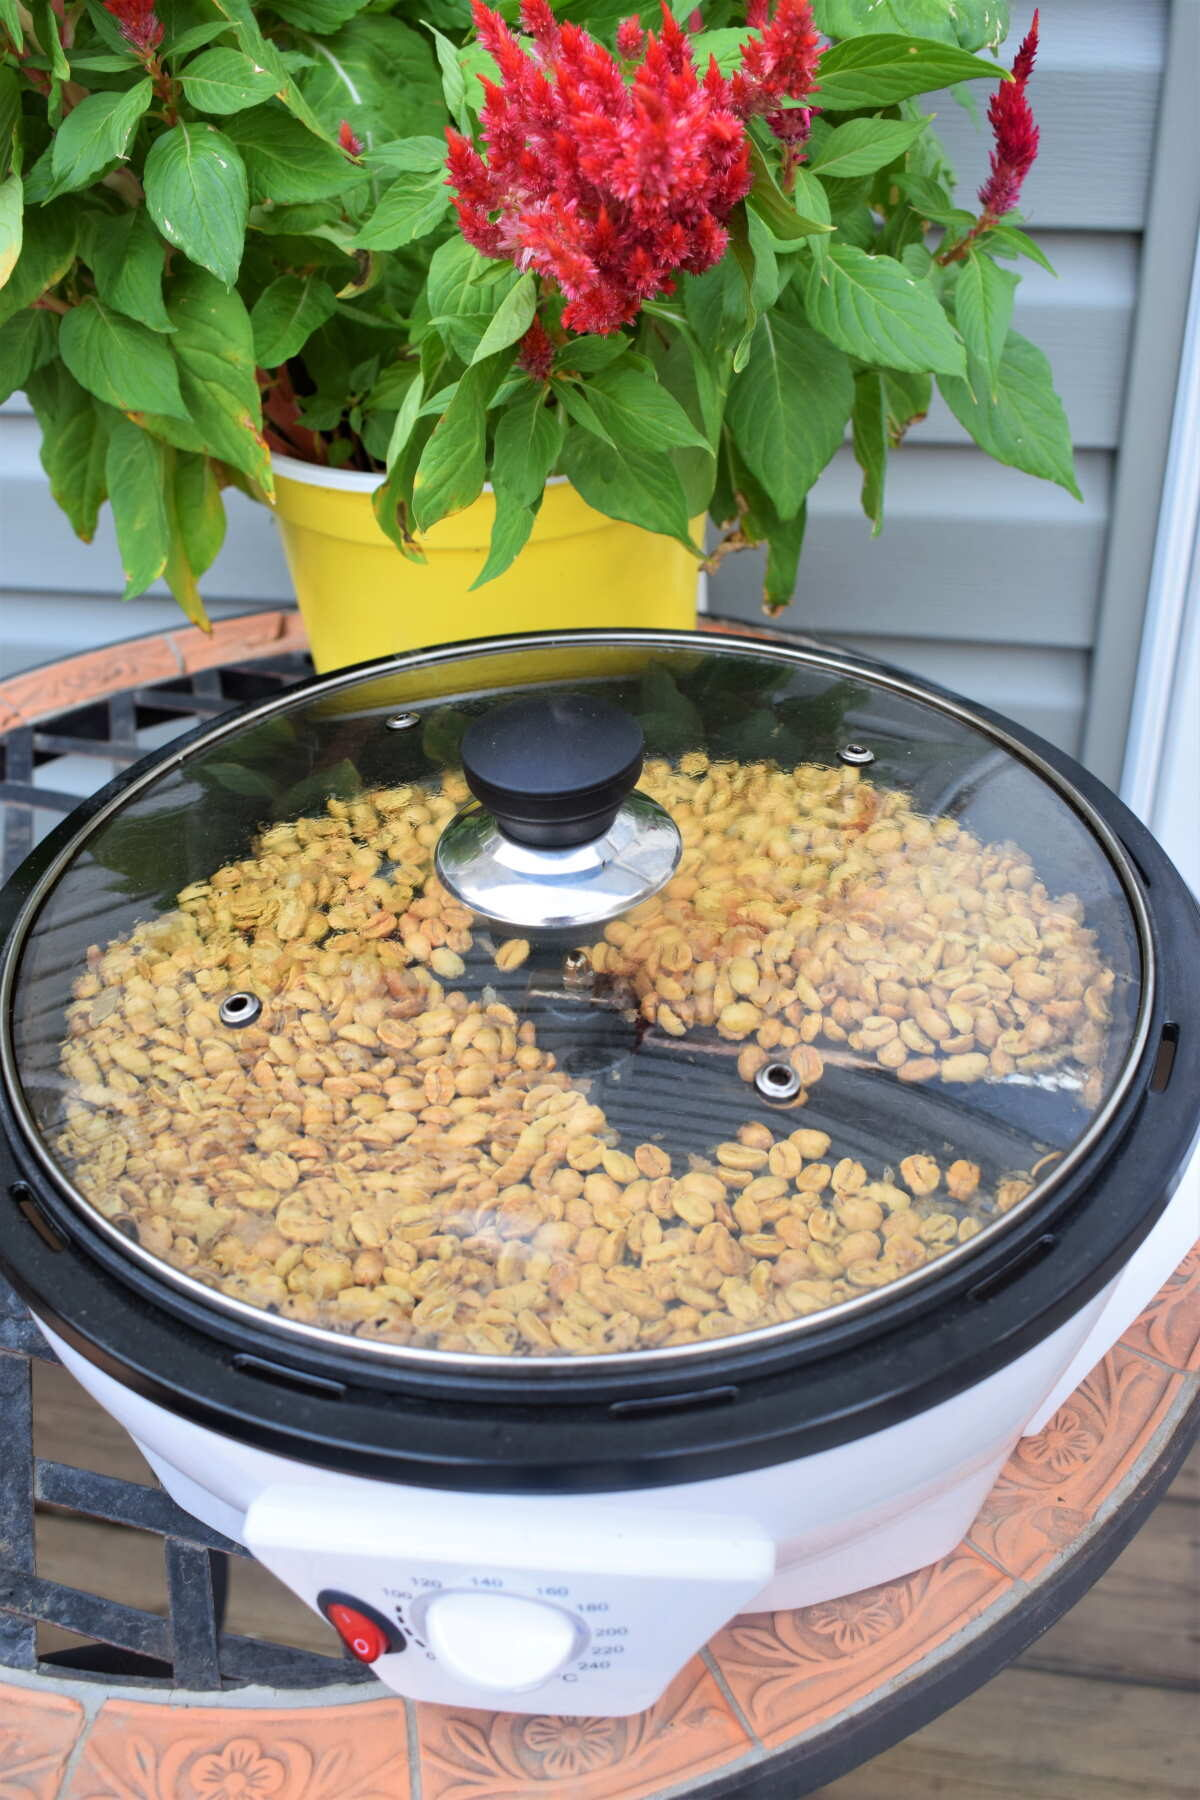 Coffee roaster with coffee beans, flower pot in the background.